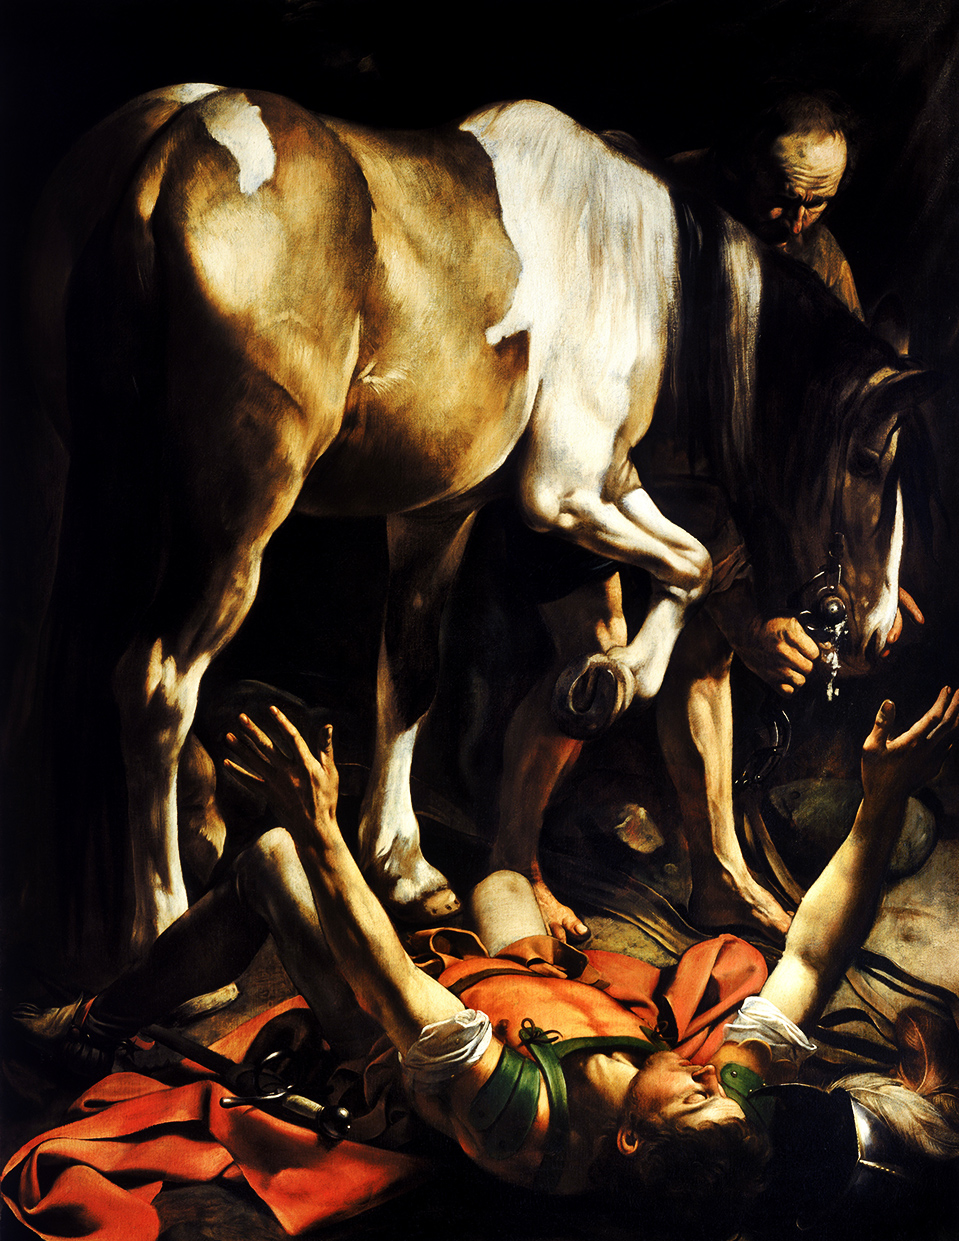 Caravaggio - Conversion on the Way to Damascus